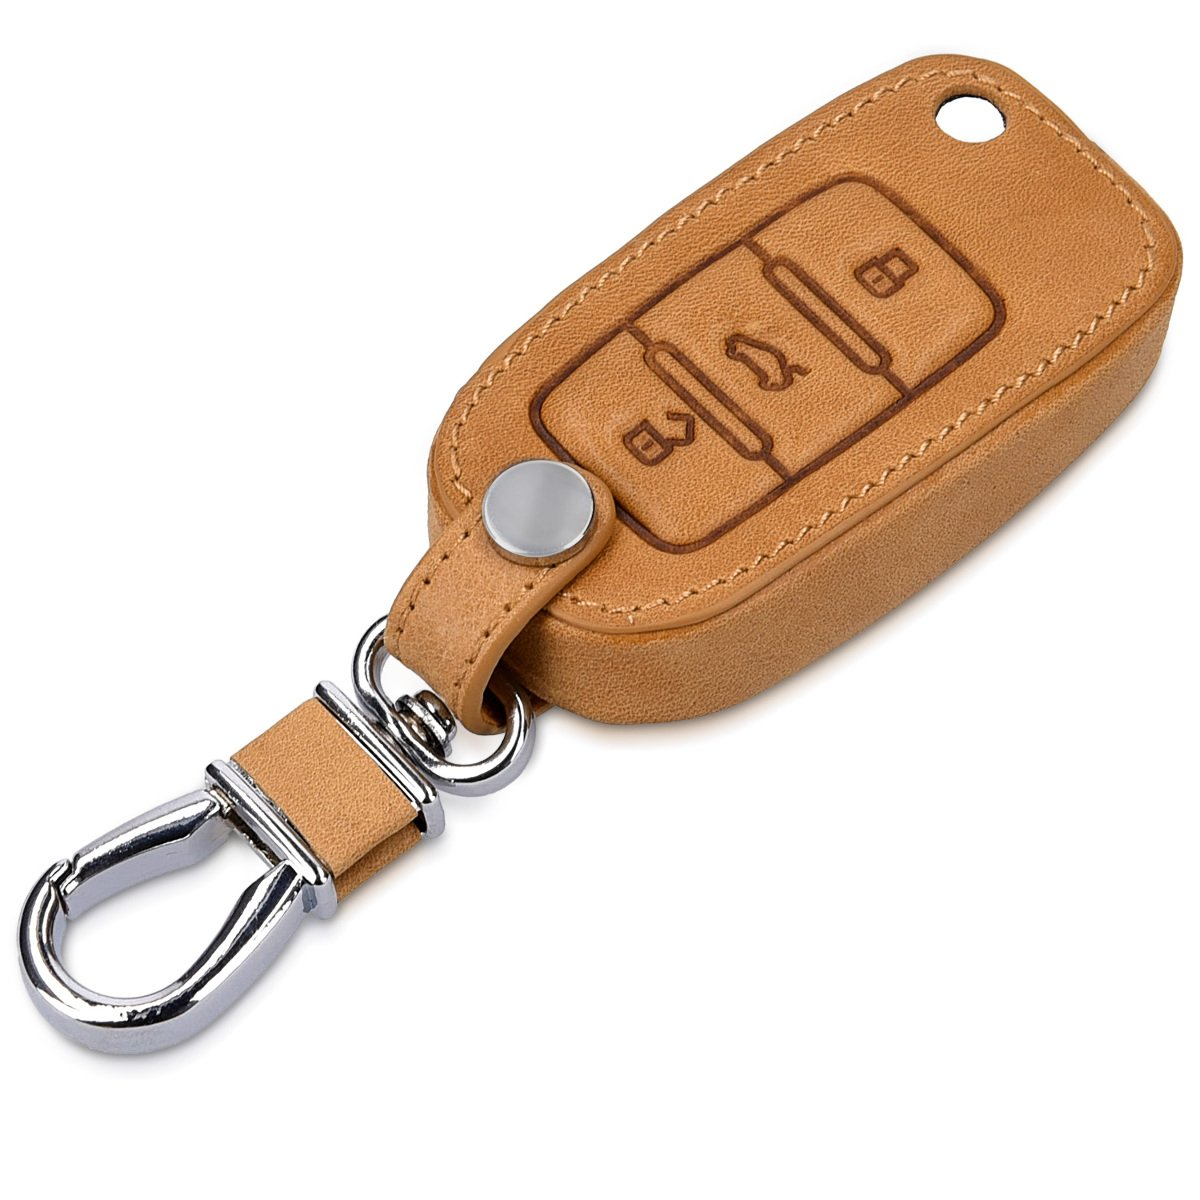 White//Red//Black Heavy Duty PU Leather Protective Key Fob Cover for VW Skoda SEAT 3 Button Car Key kwmobile Car Key Cover for VW Skoda Seat